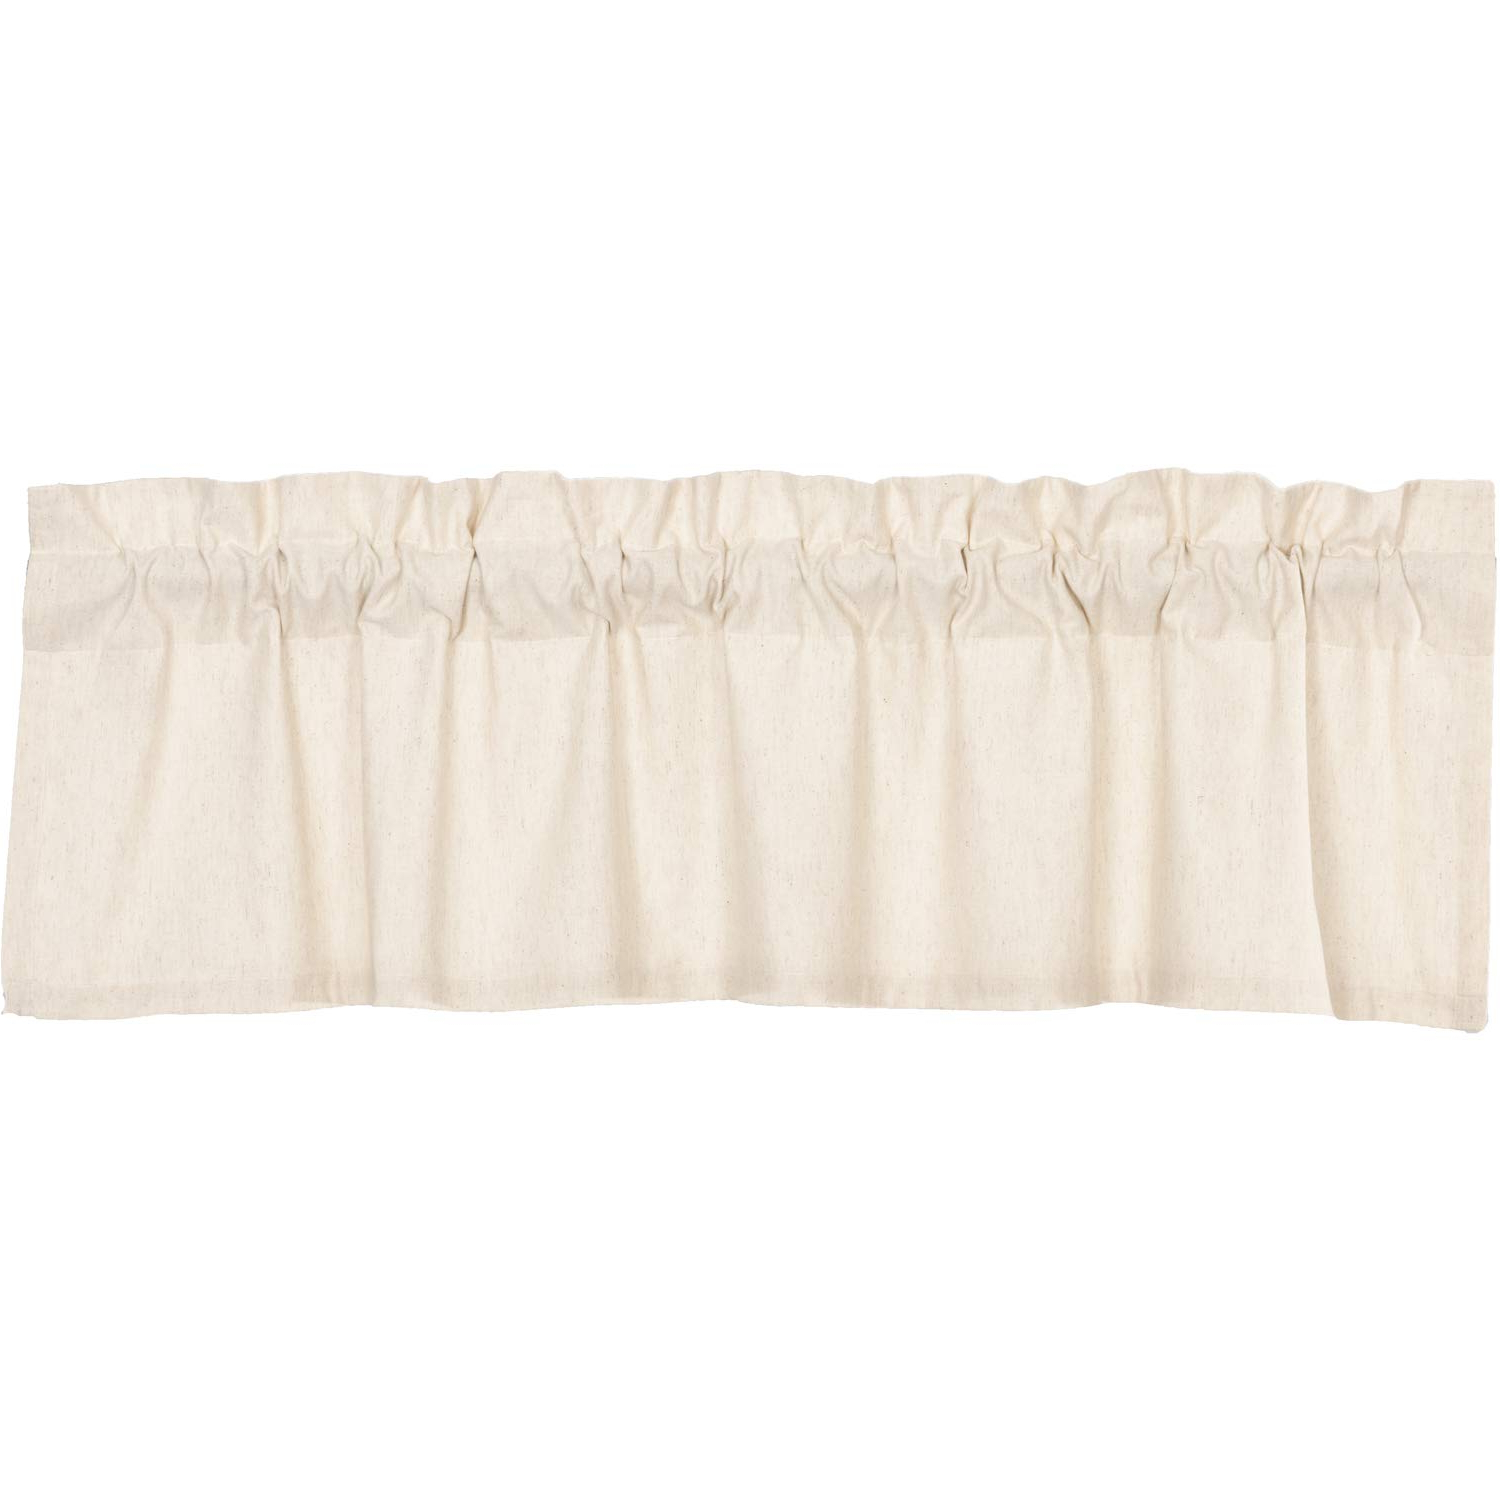 Newest Rod Pocket Cotton Linen Blend Solid Color Flax Kitchen Curtains For Amazon: Vhc Brands Farmhouse Kitchen Curtains Simple (View 6 of 20)